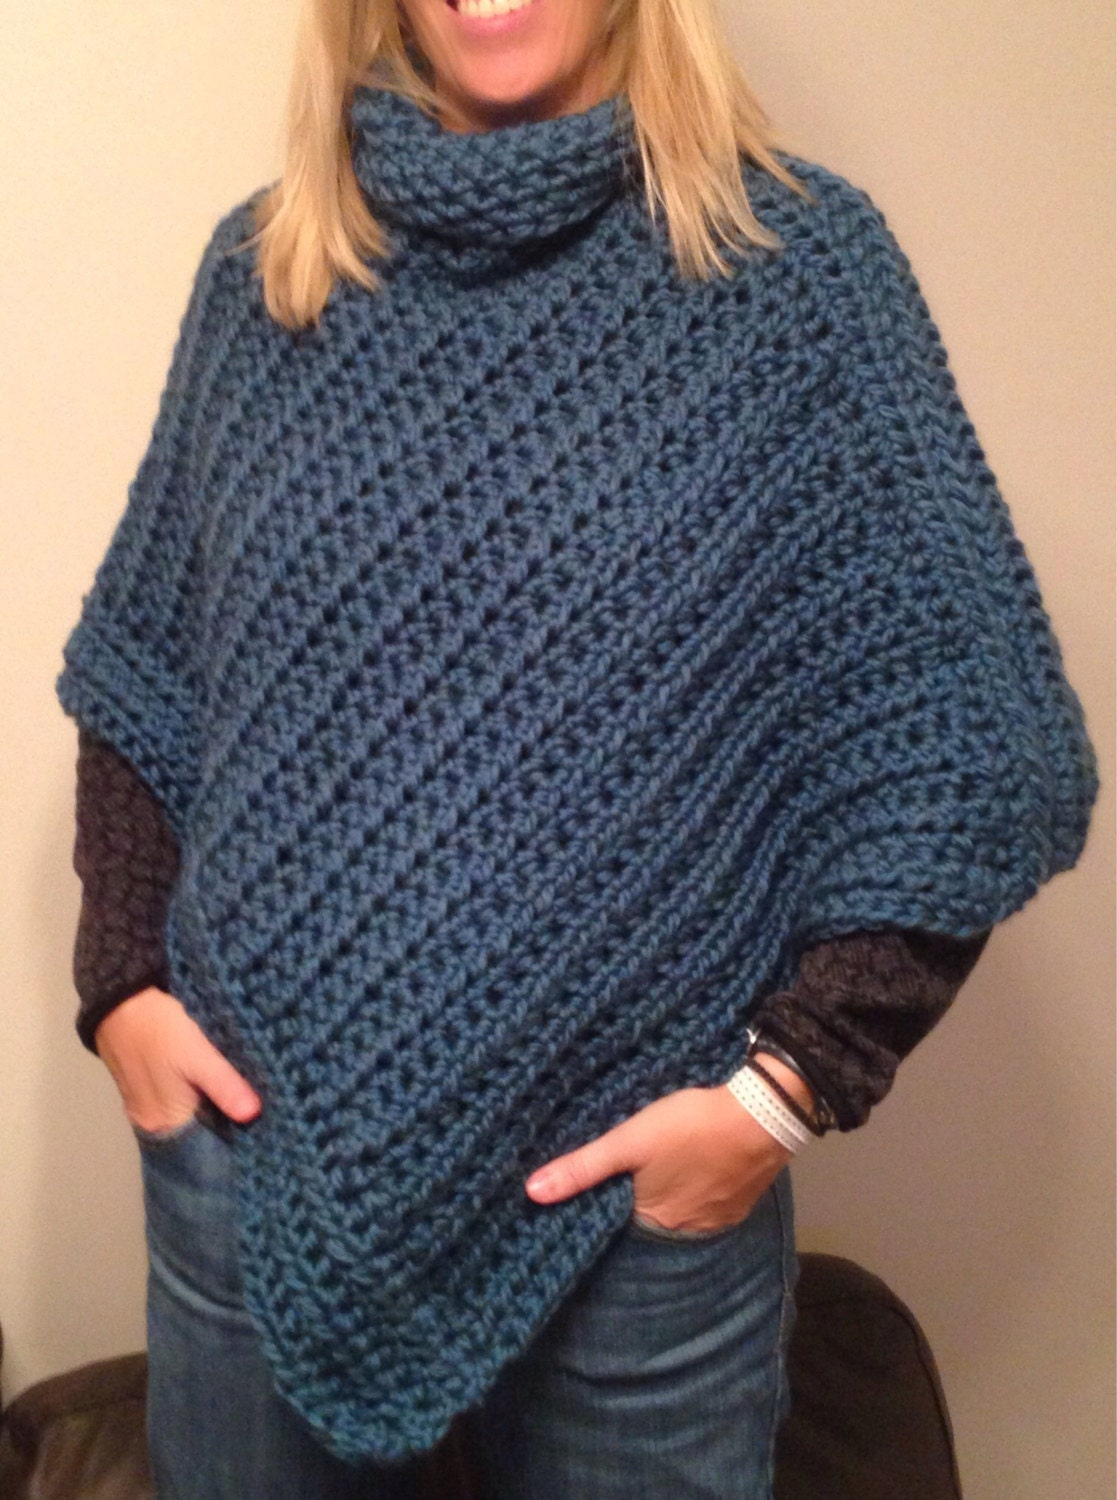 Free Crochet Patterns For Cowl Neck Poncho : Cowl Neck Poncho Crochet Pattern - Bing images